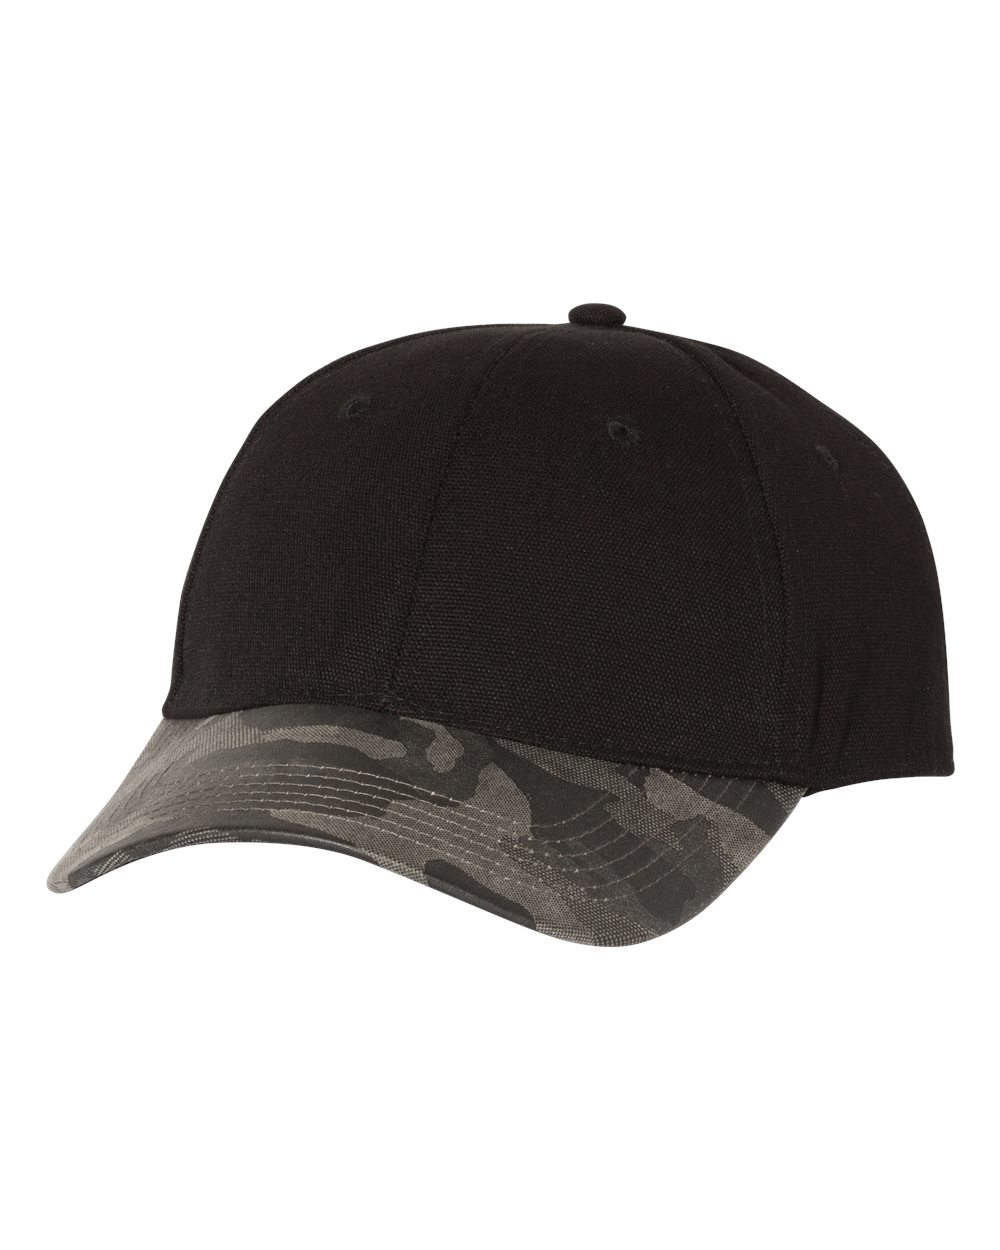 Outdoor Cap GHP100 - Canvas Crown with Weathered Camo Visor